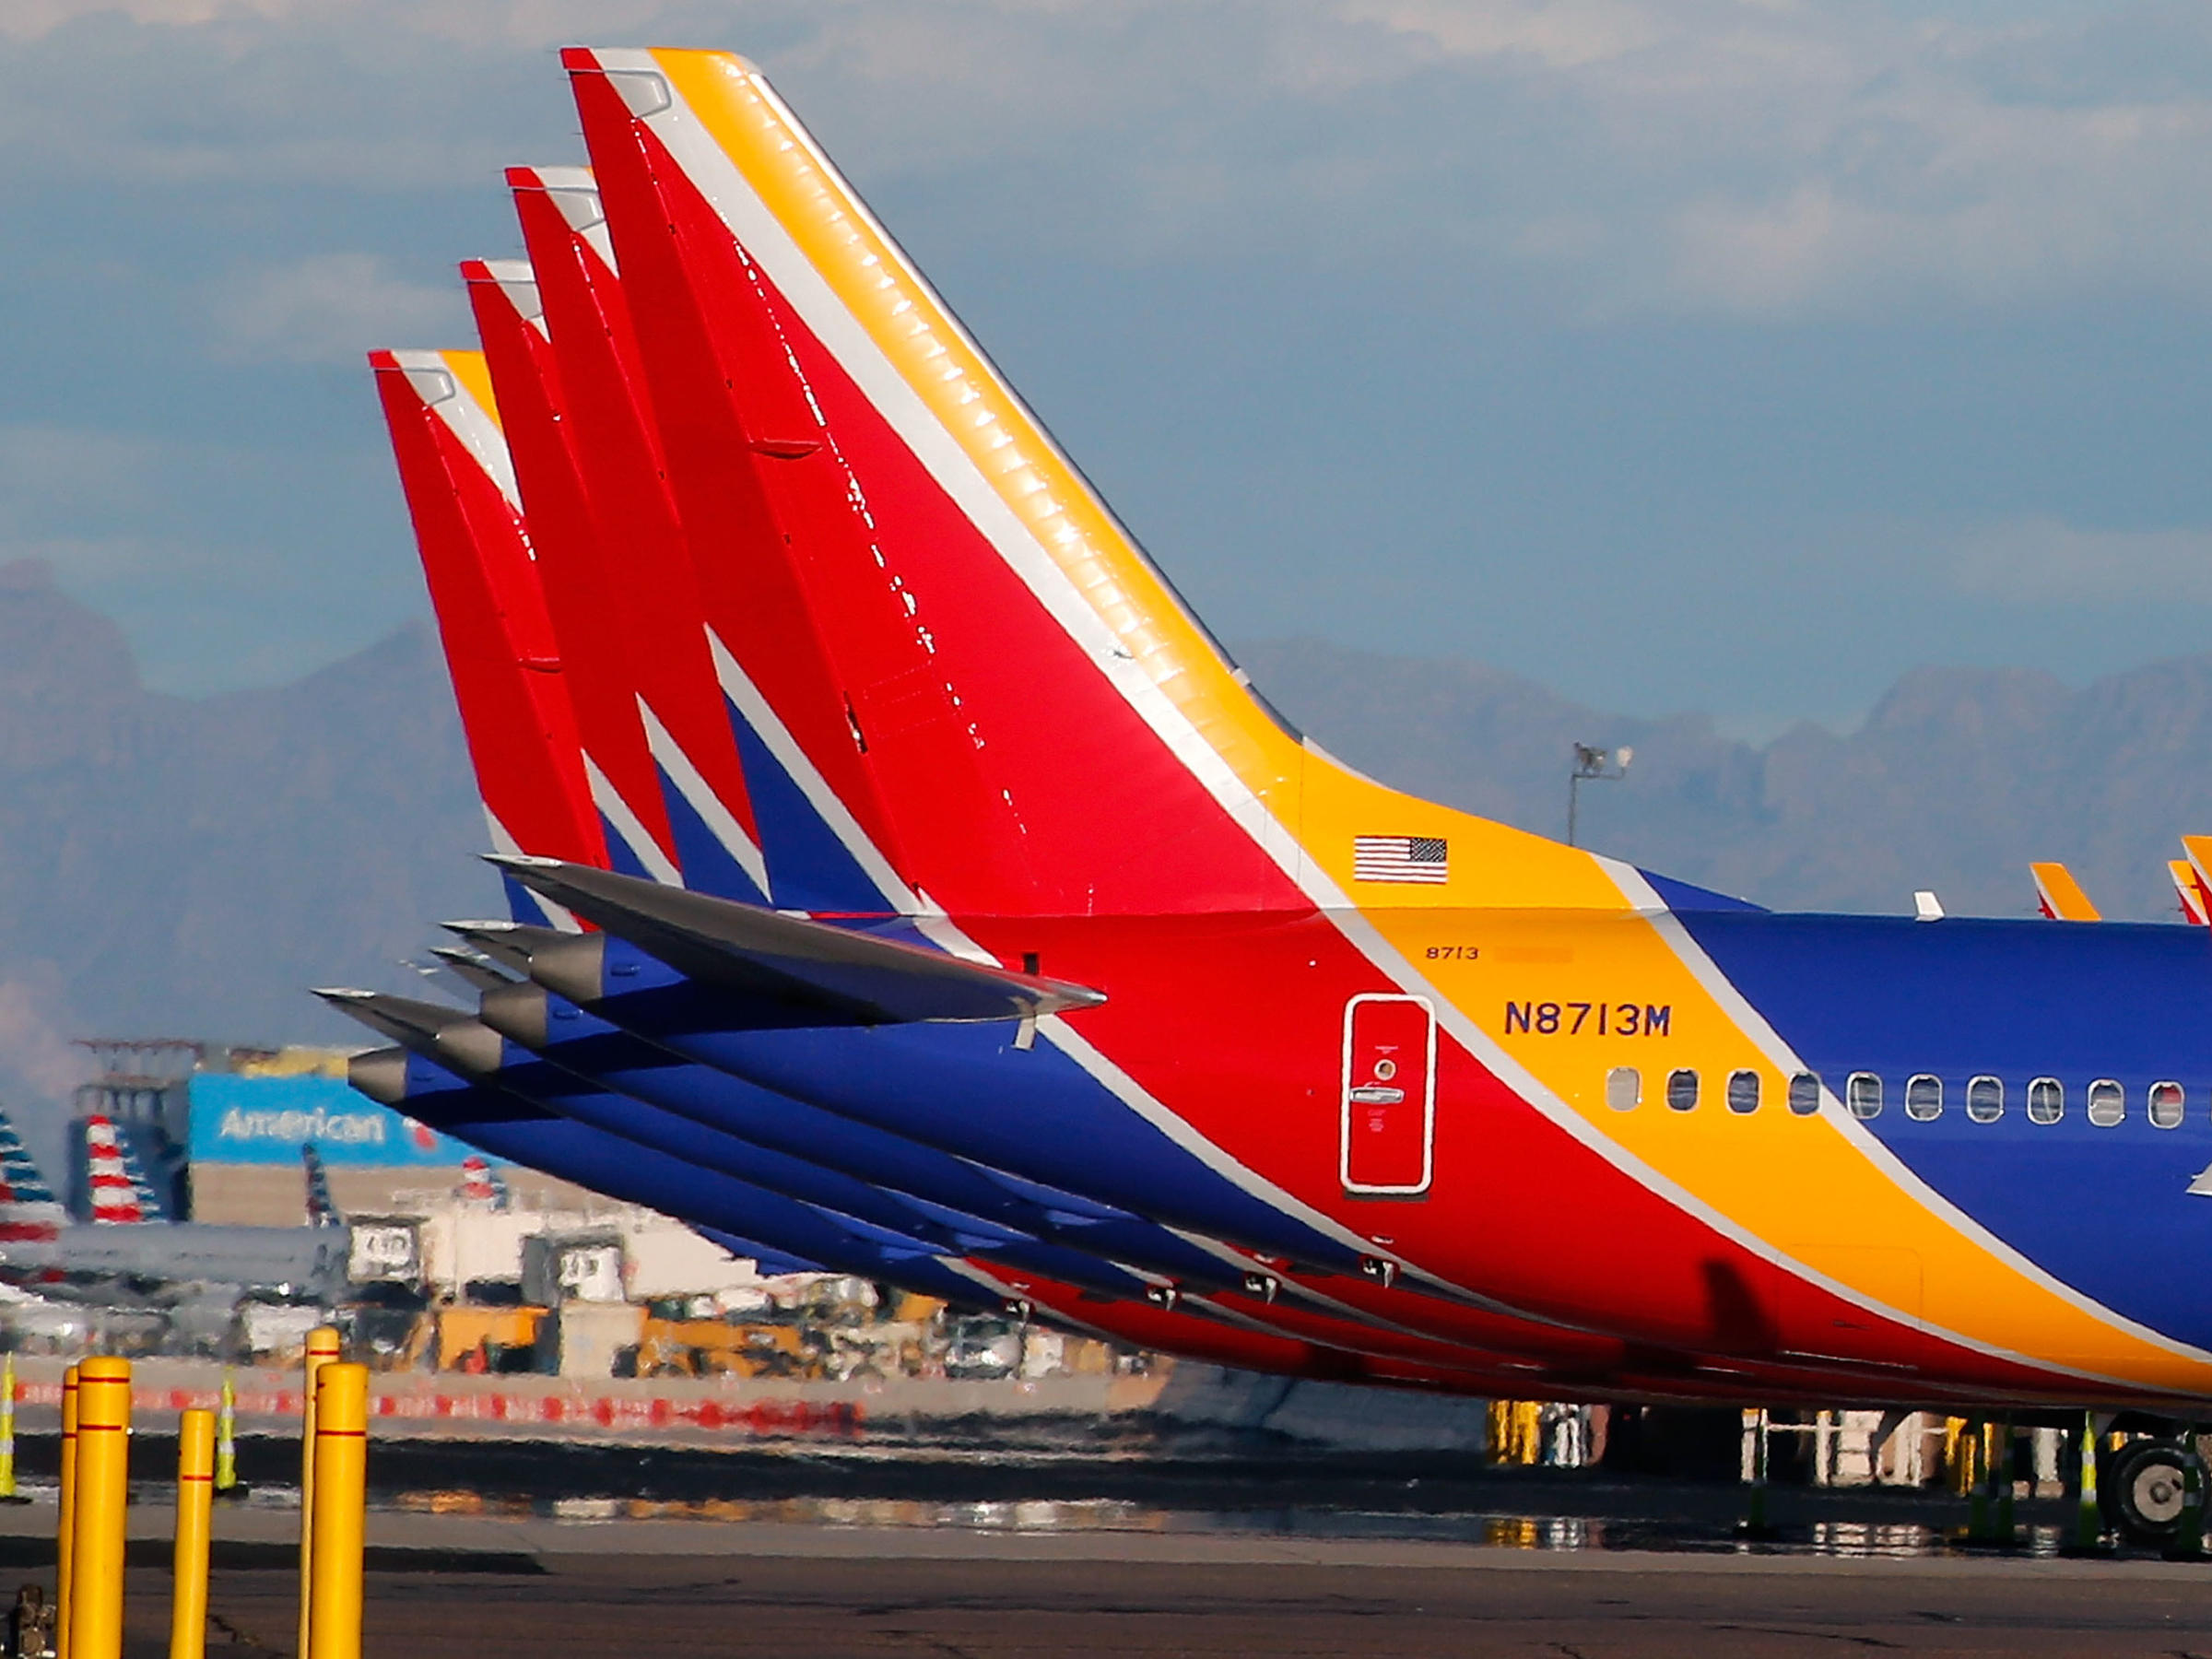 Faa Finds New Problem With 737 Max Jets Delaying Their Return To